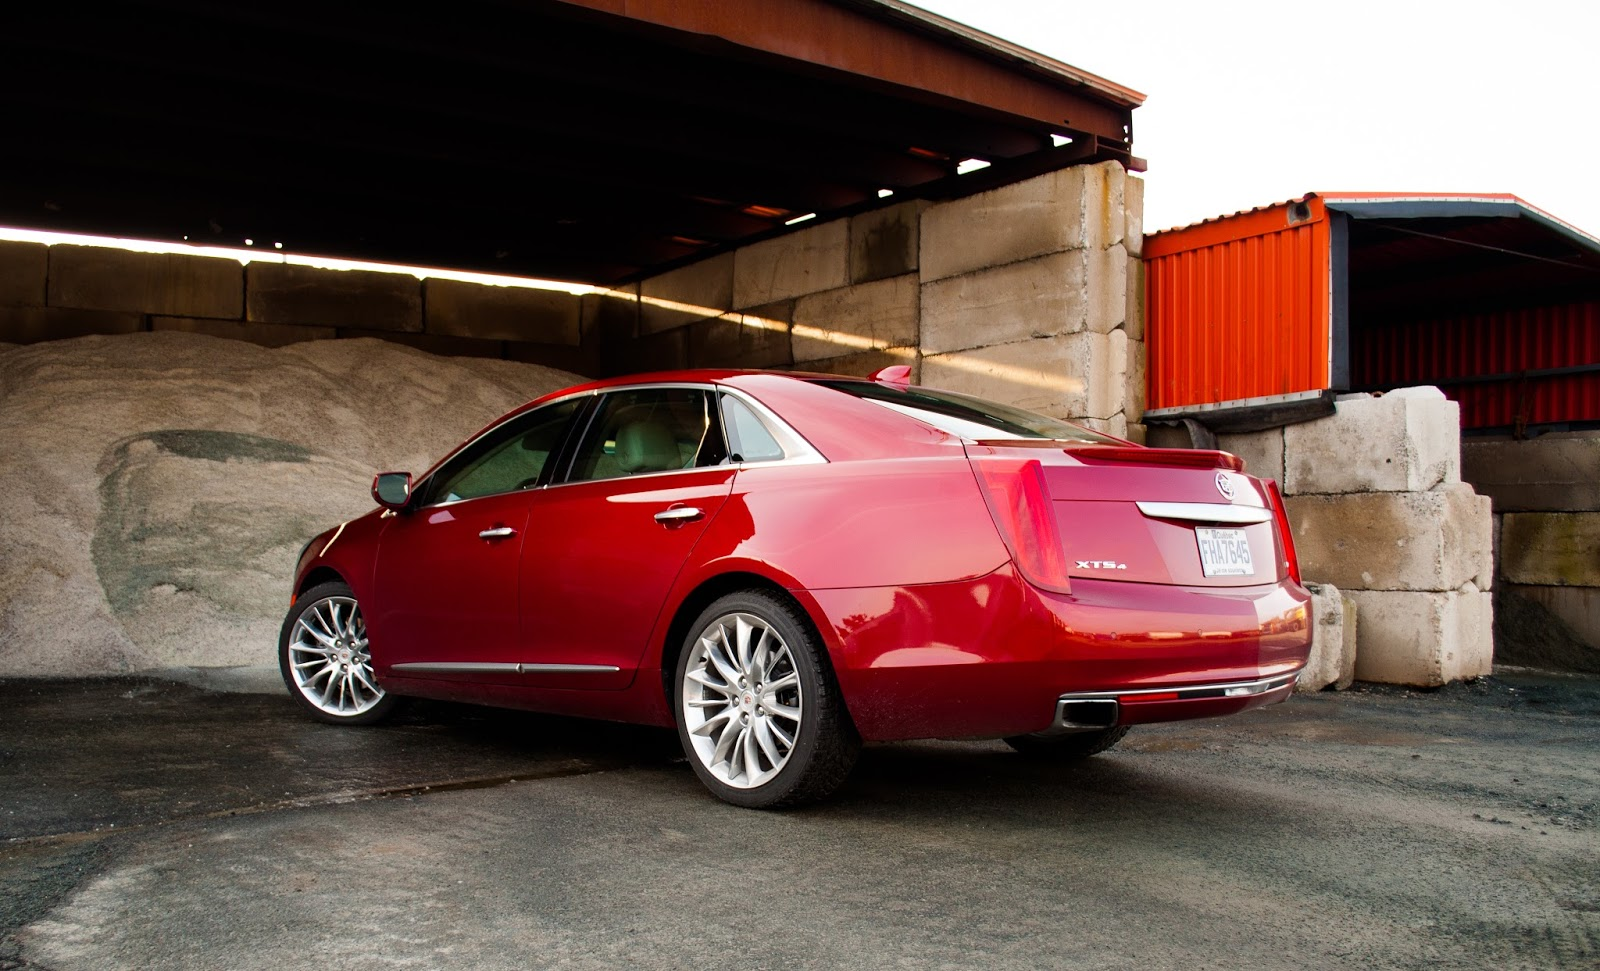 2015 Cadillac XTS Vsport rear